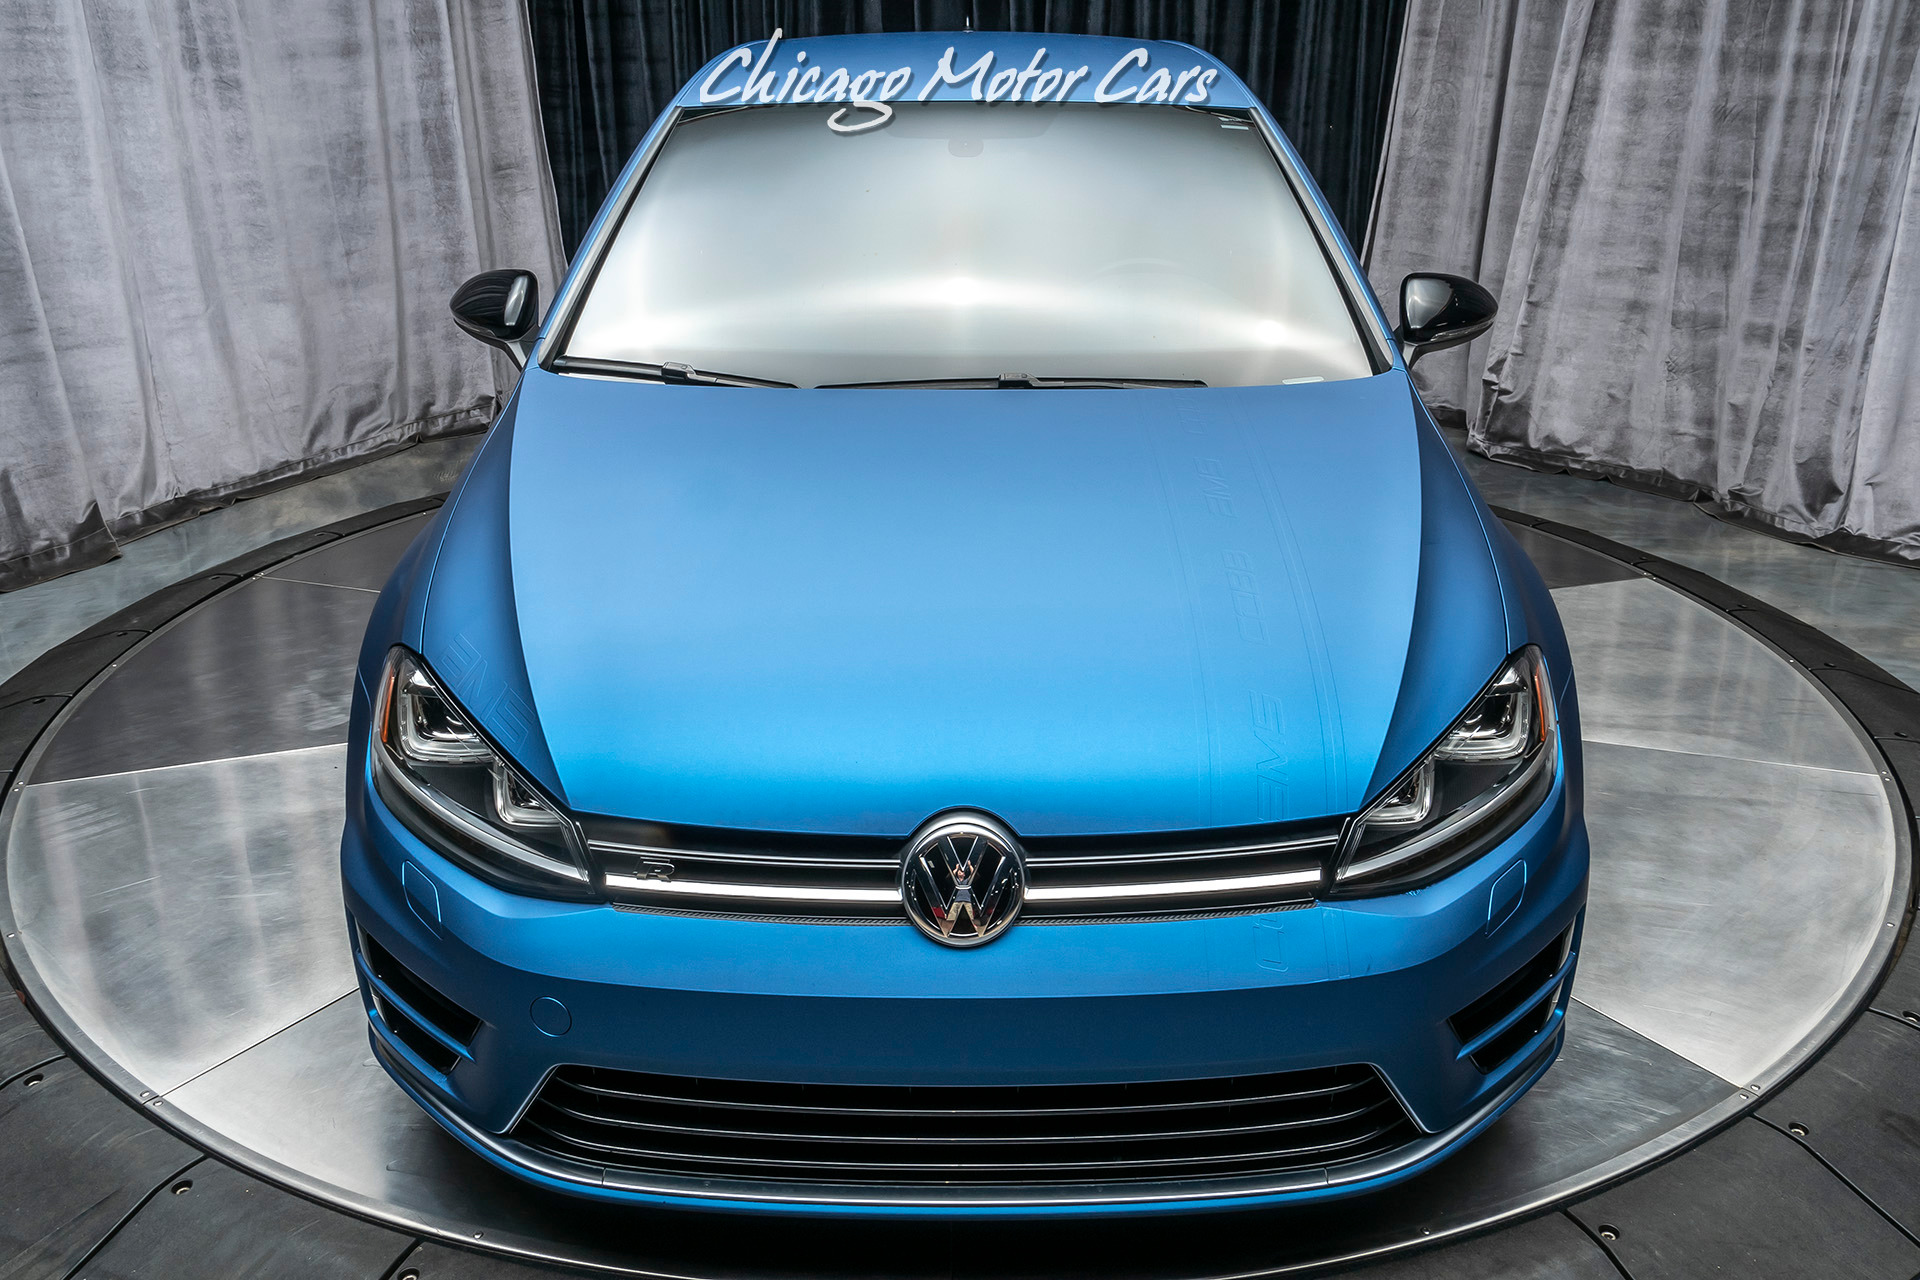 Used-2015-Volkswagen-Golf-R-Hatchback-AMS-PERFORMANCE-UPGRADES-AWD-400-HP